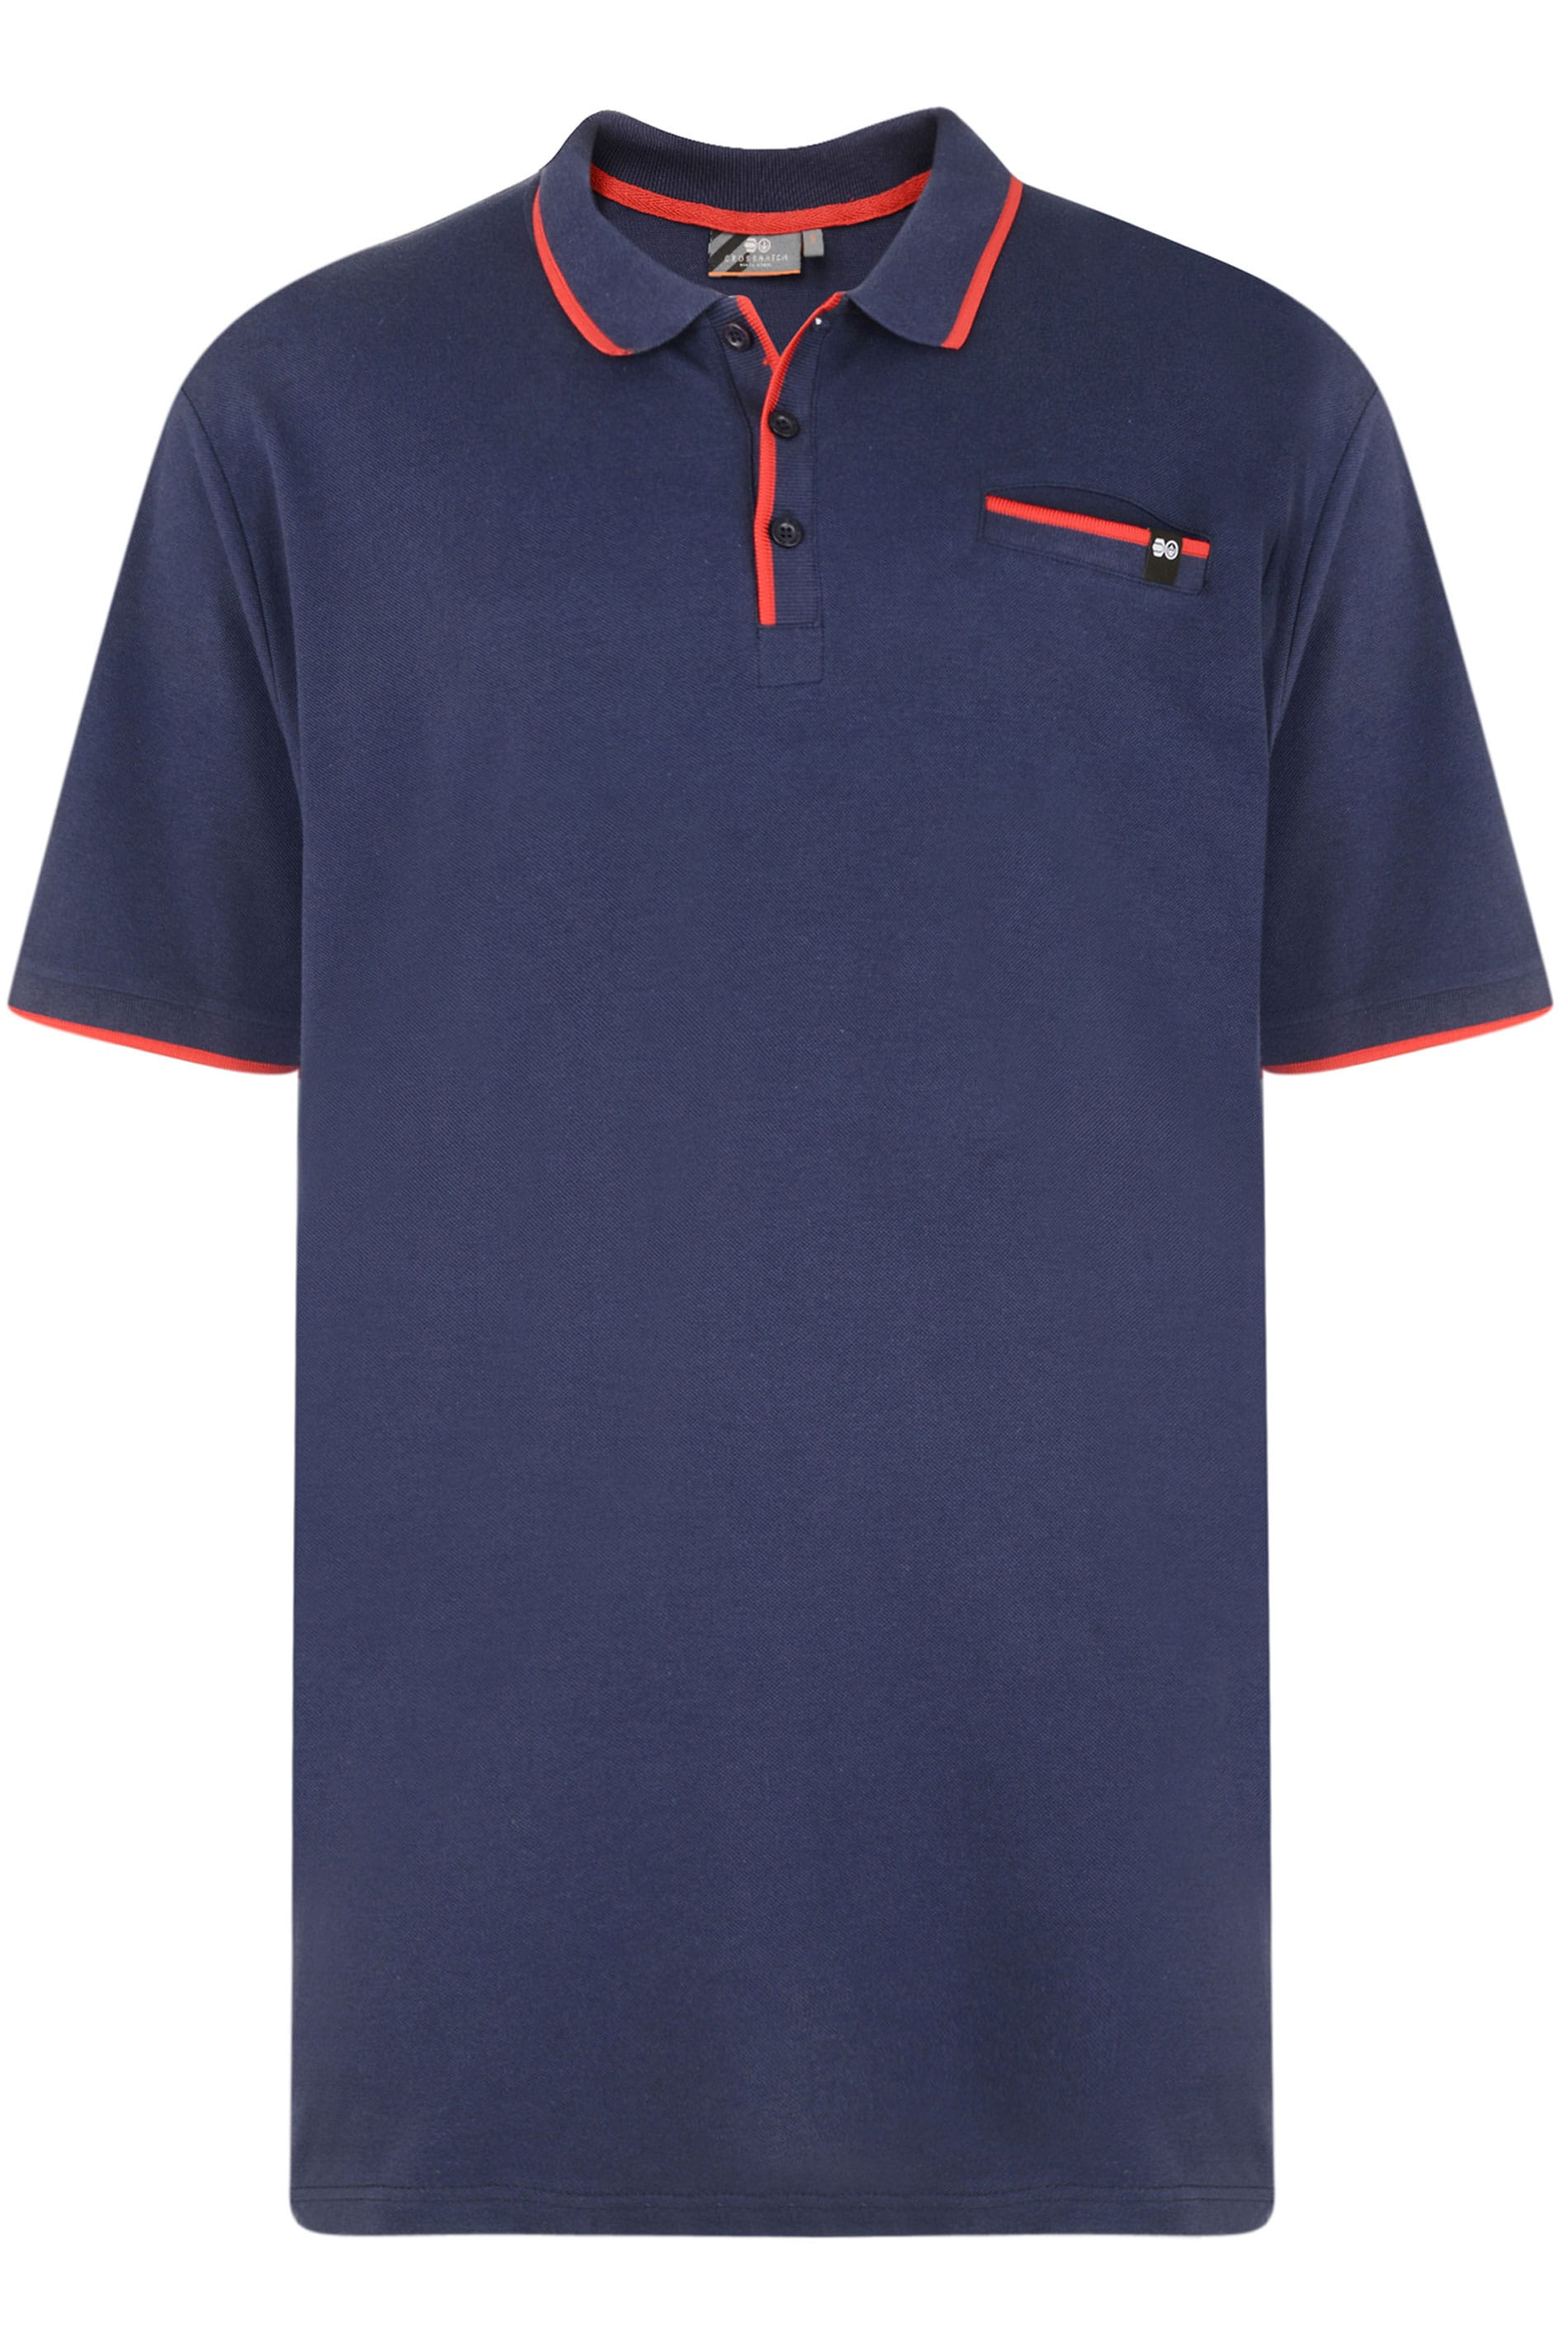 CROSSHATCH Navy & Orange Tipped Polo Shirt